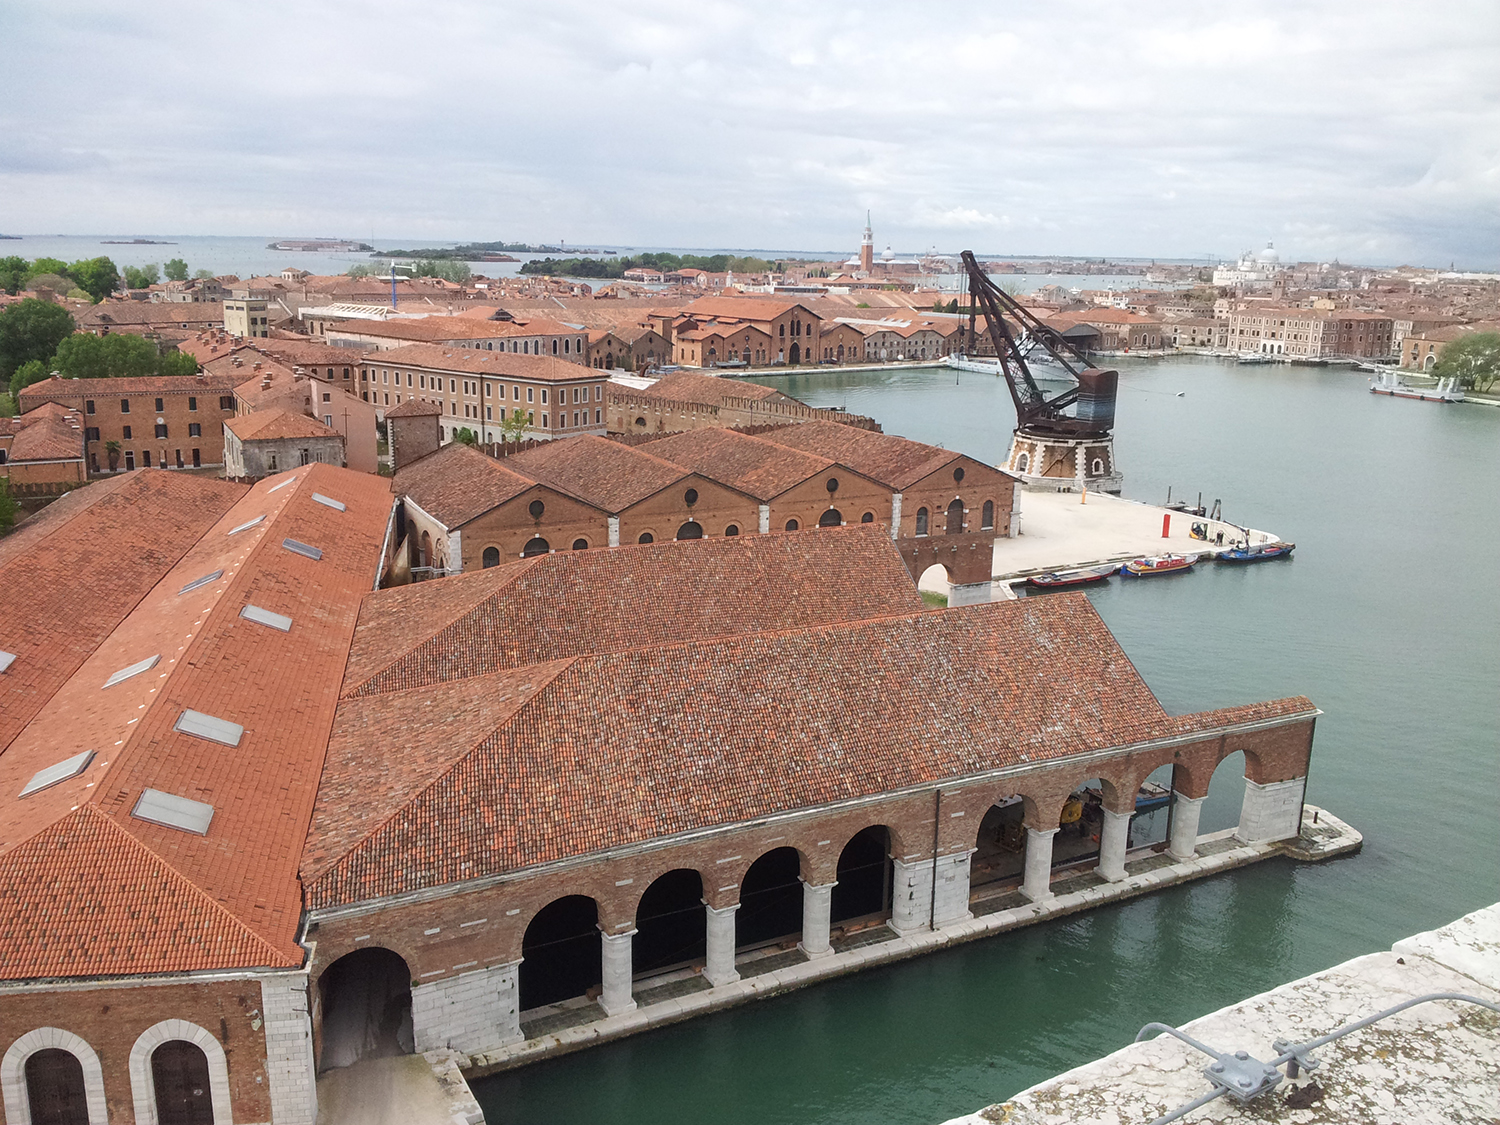 Overview Arsenale_Photo by Andrea Avezzù - Courtesy La Biennale di Venez...